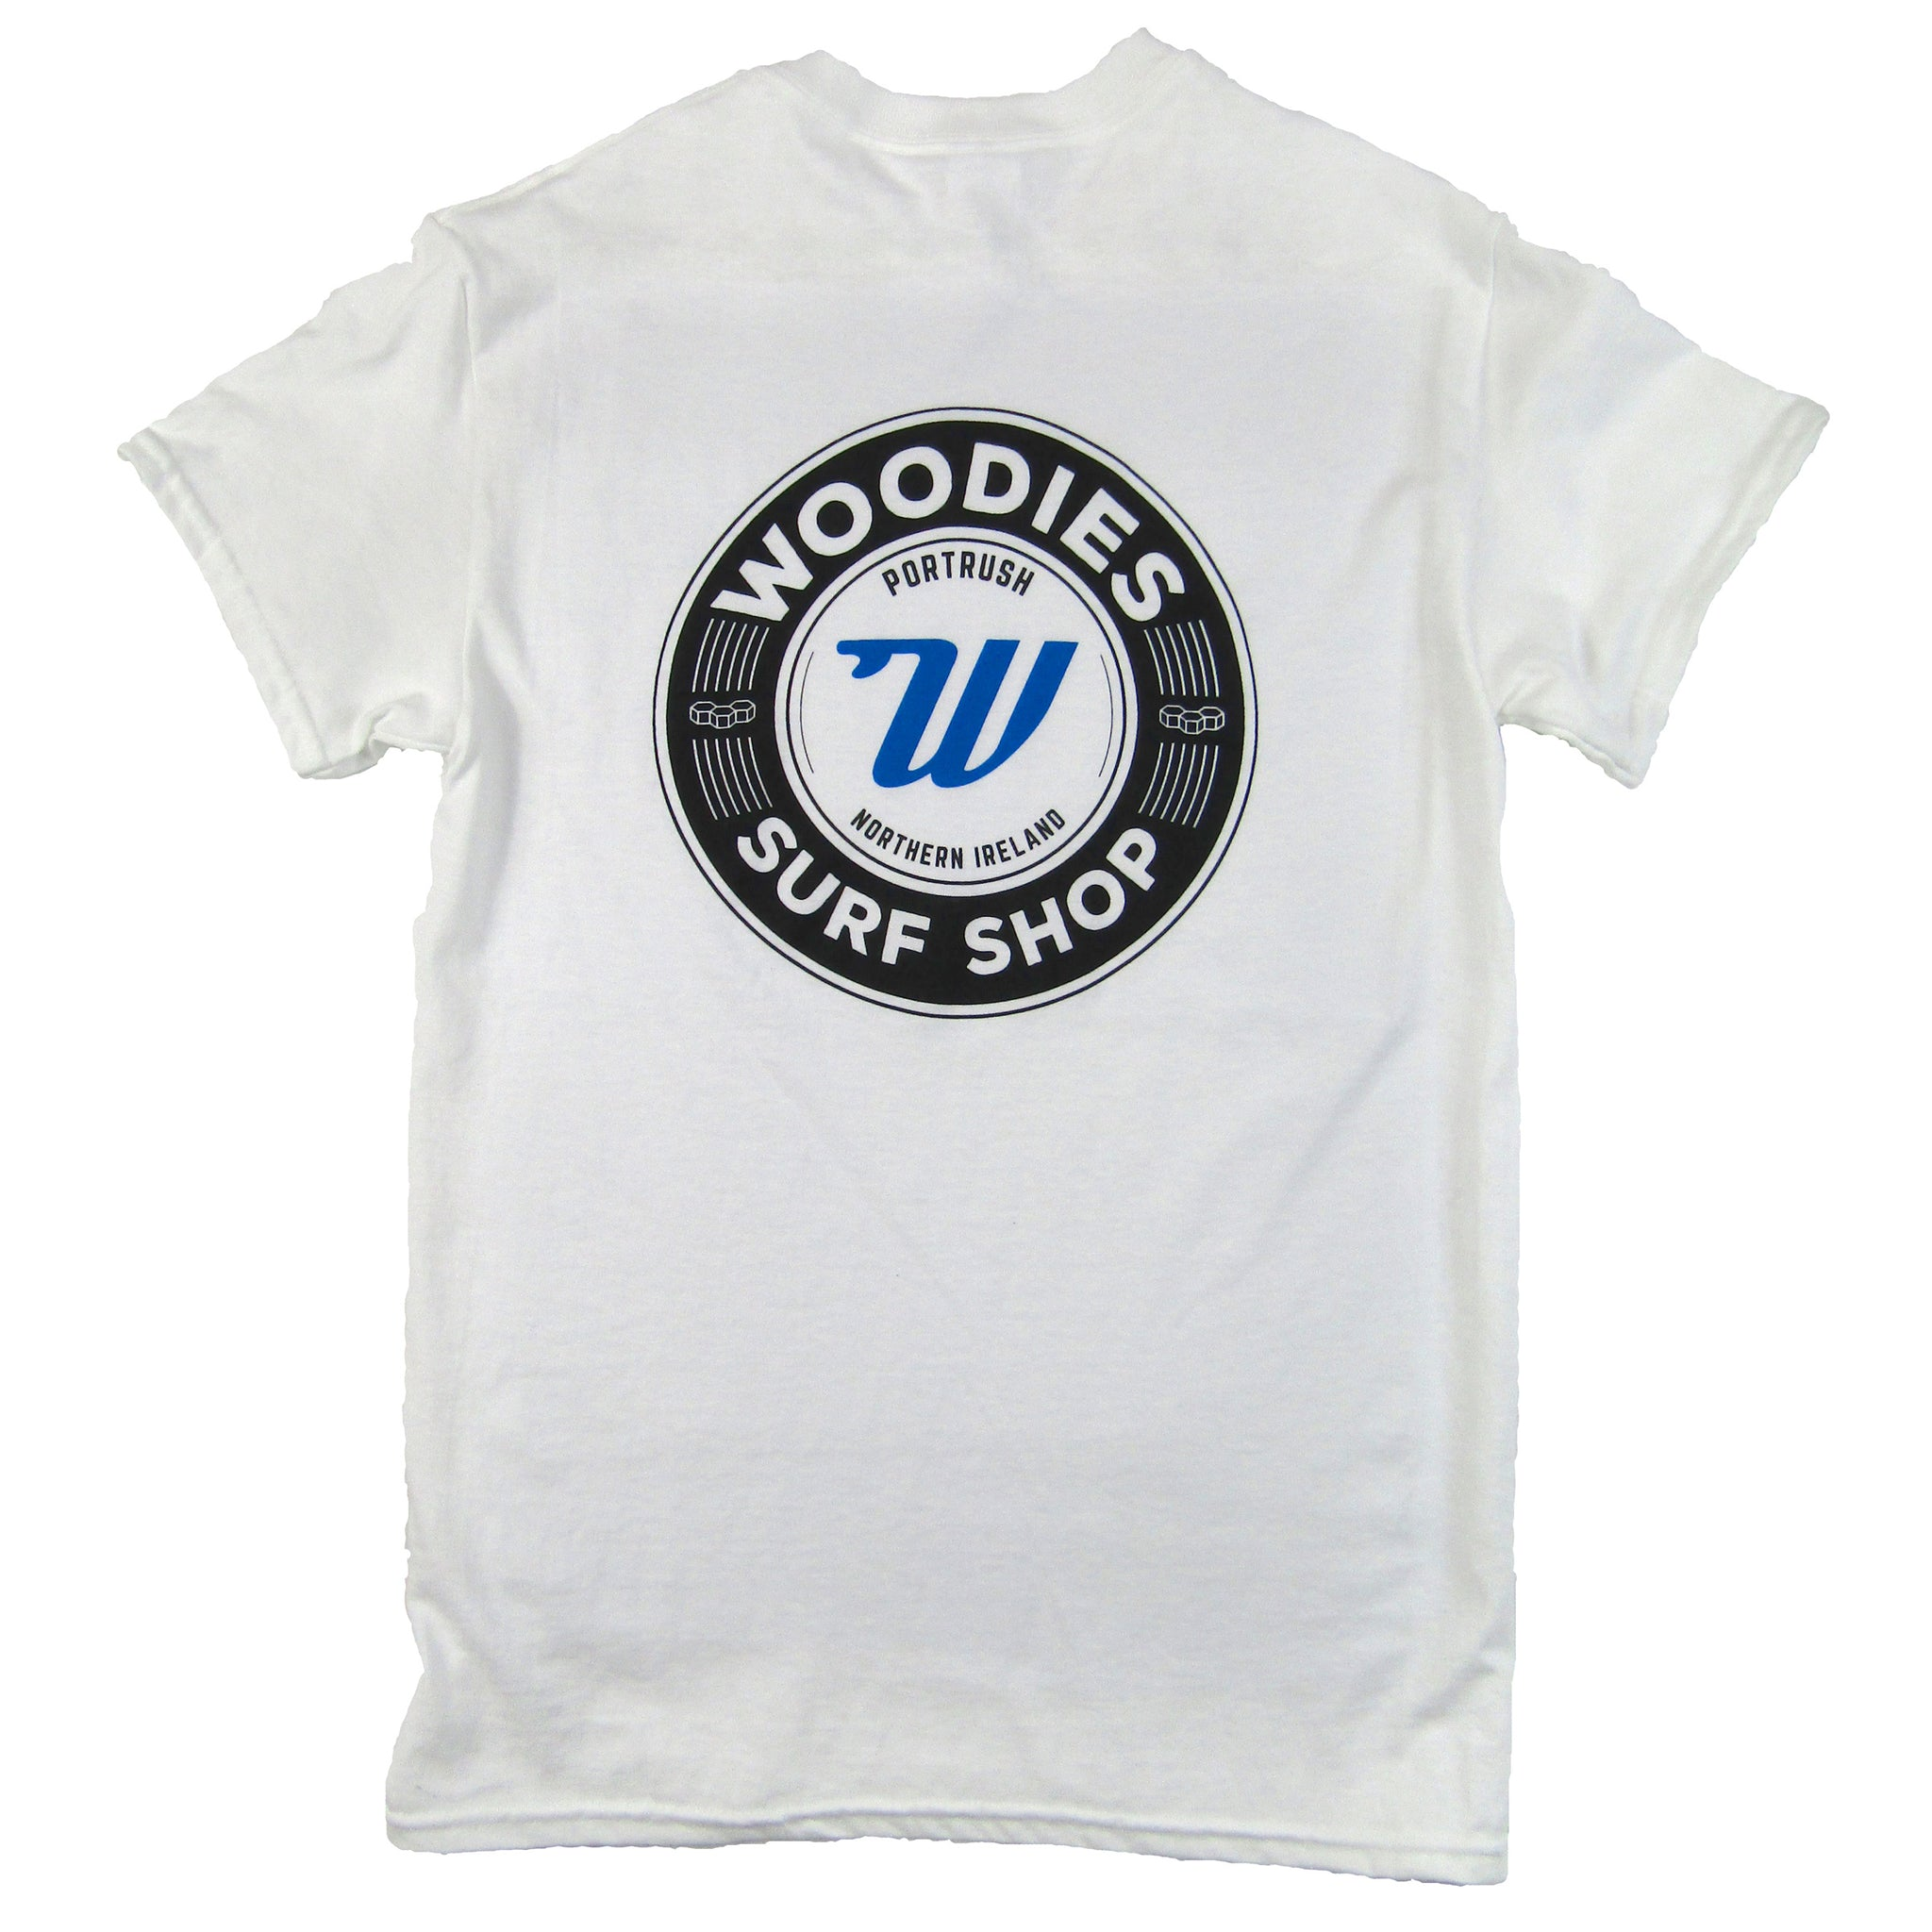 Woodies - Mens - White & Blue T-Shirt